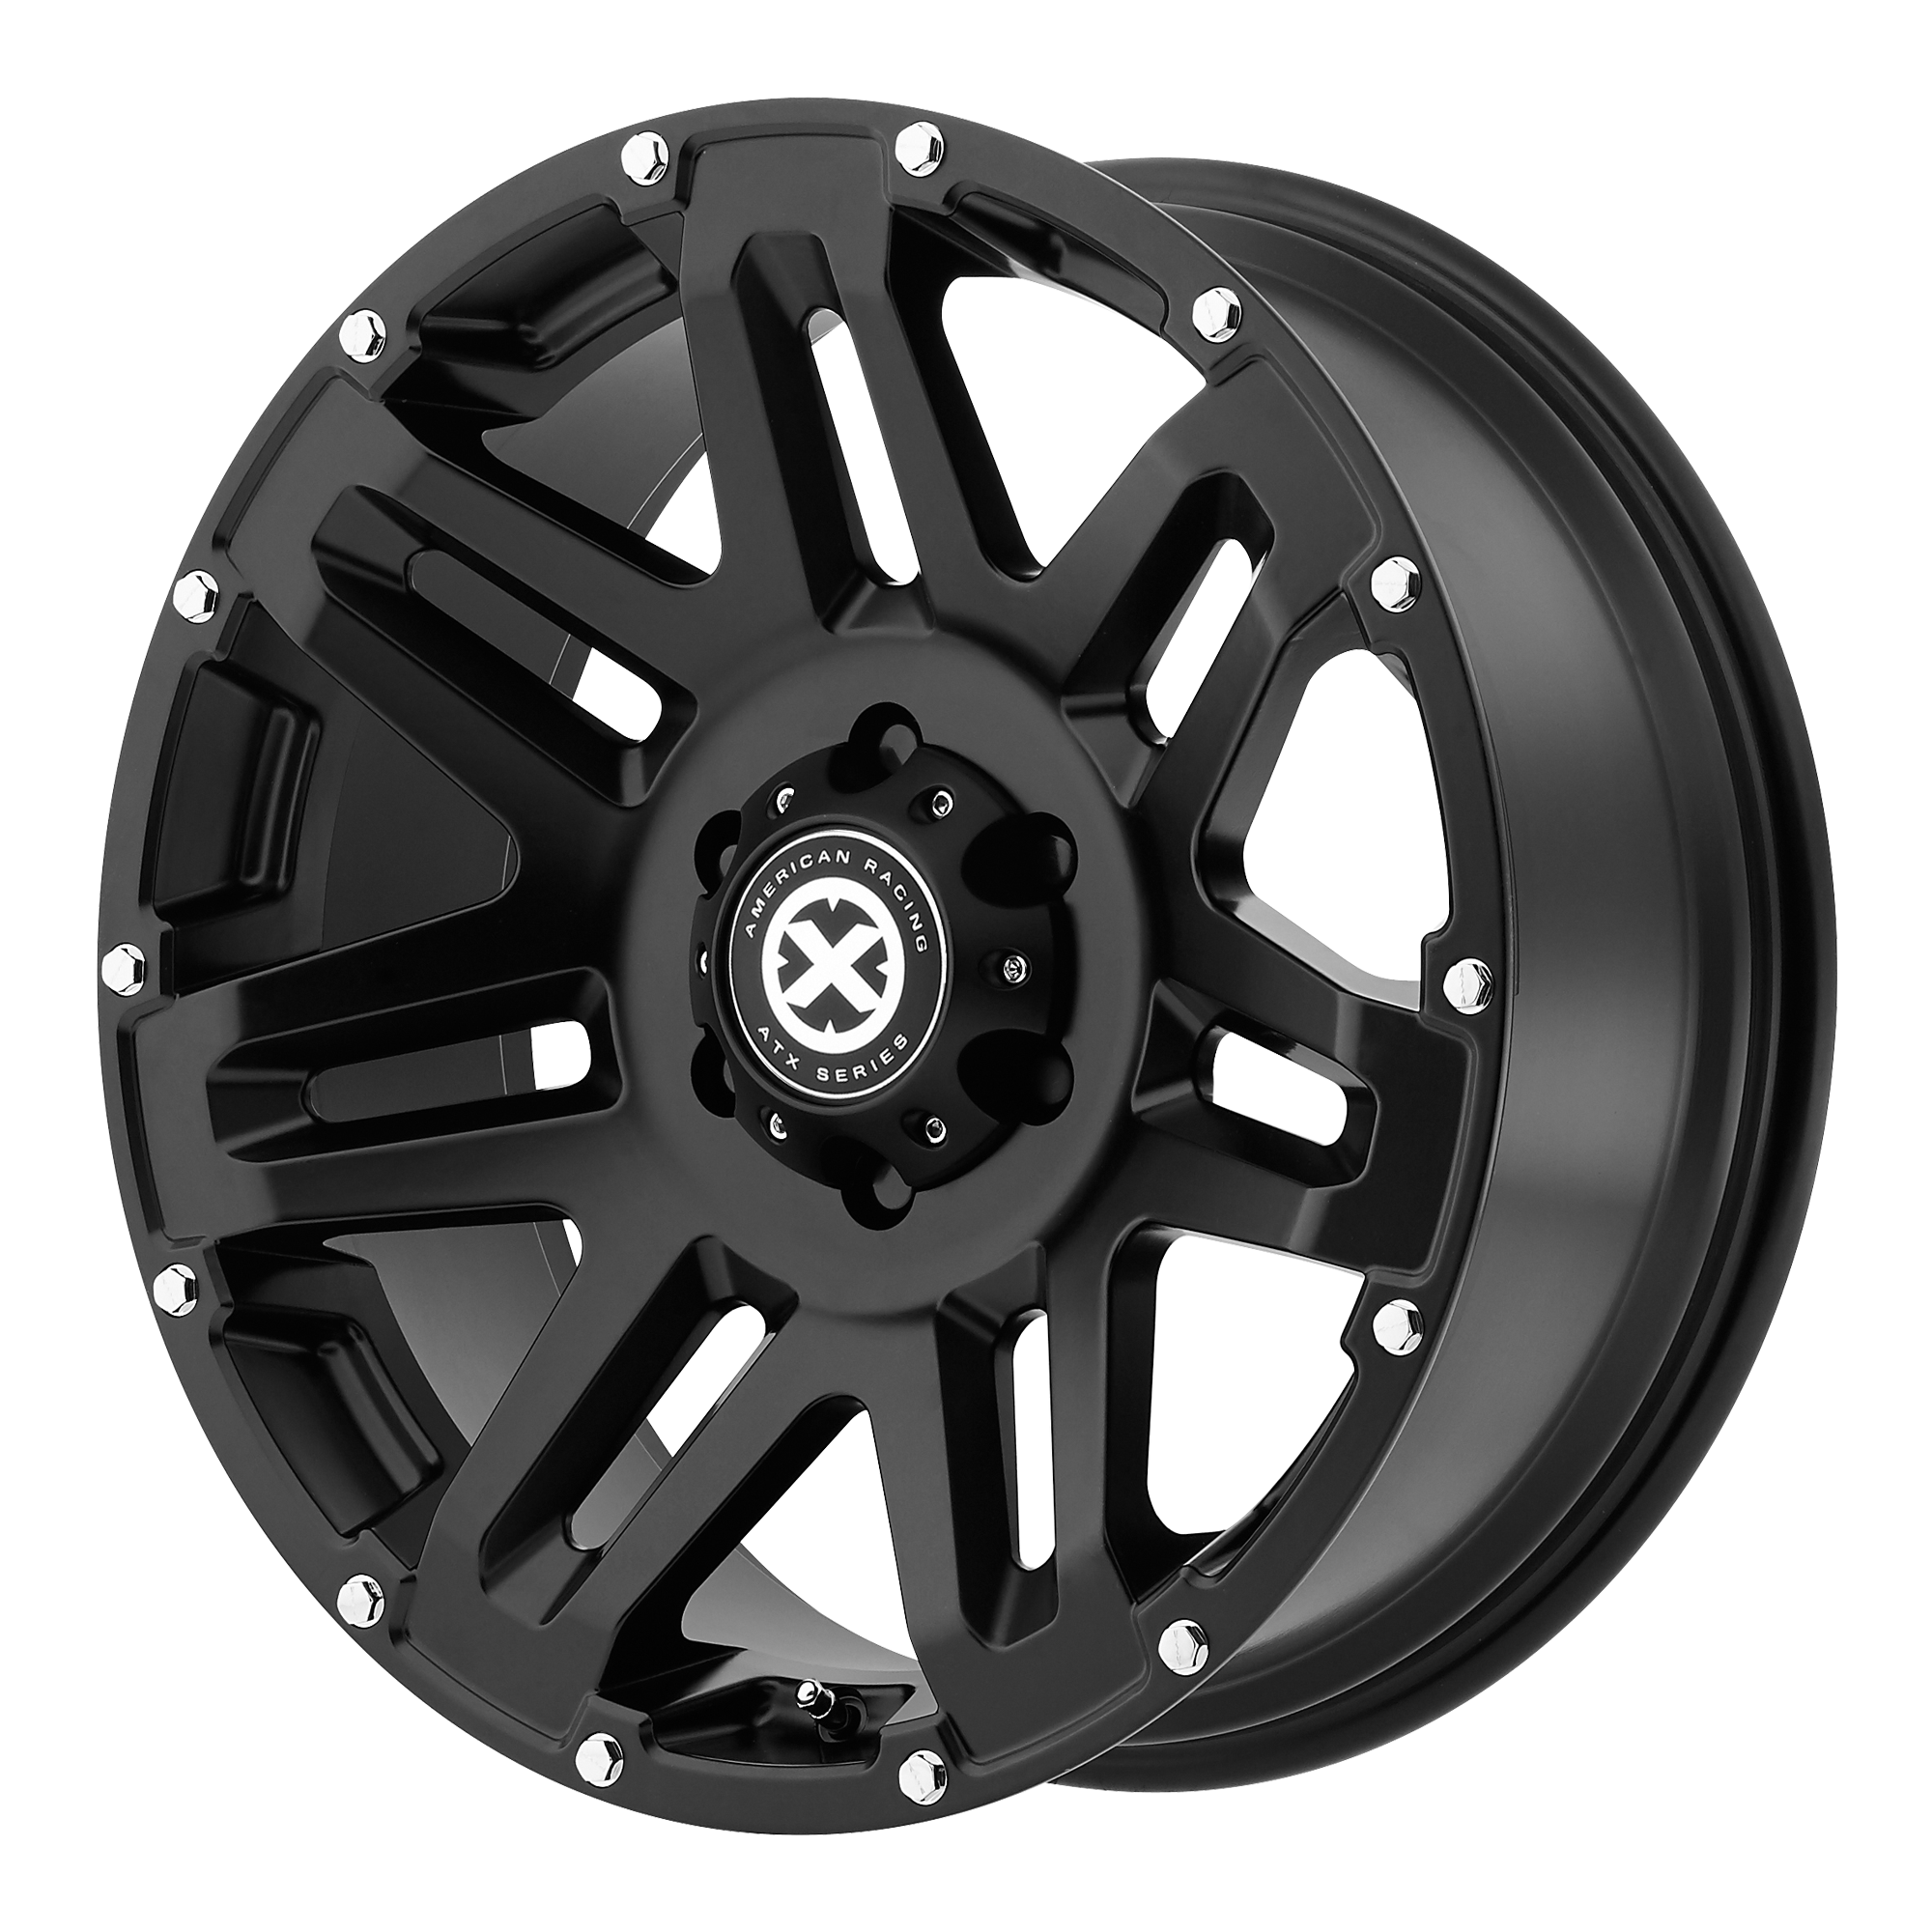 ATX Series Offroad Wheels YUKON Cast Iron Black